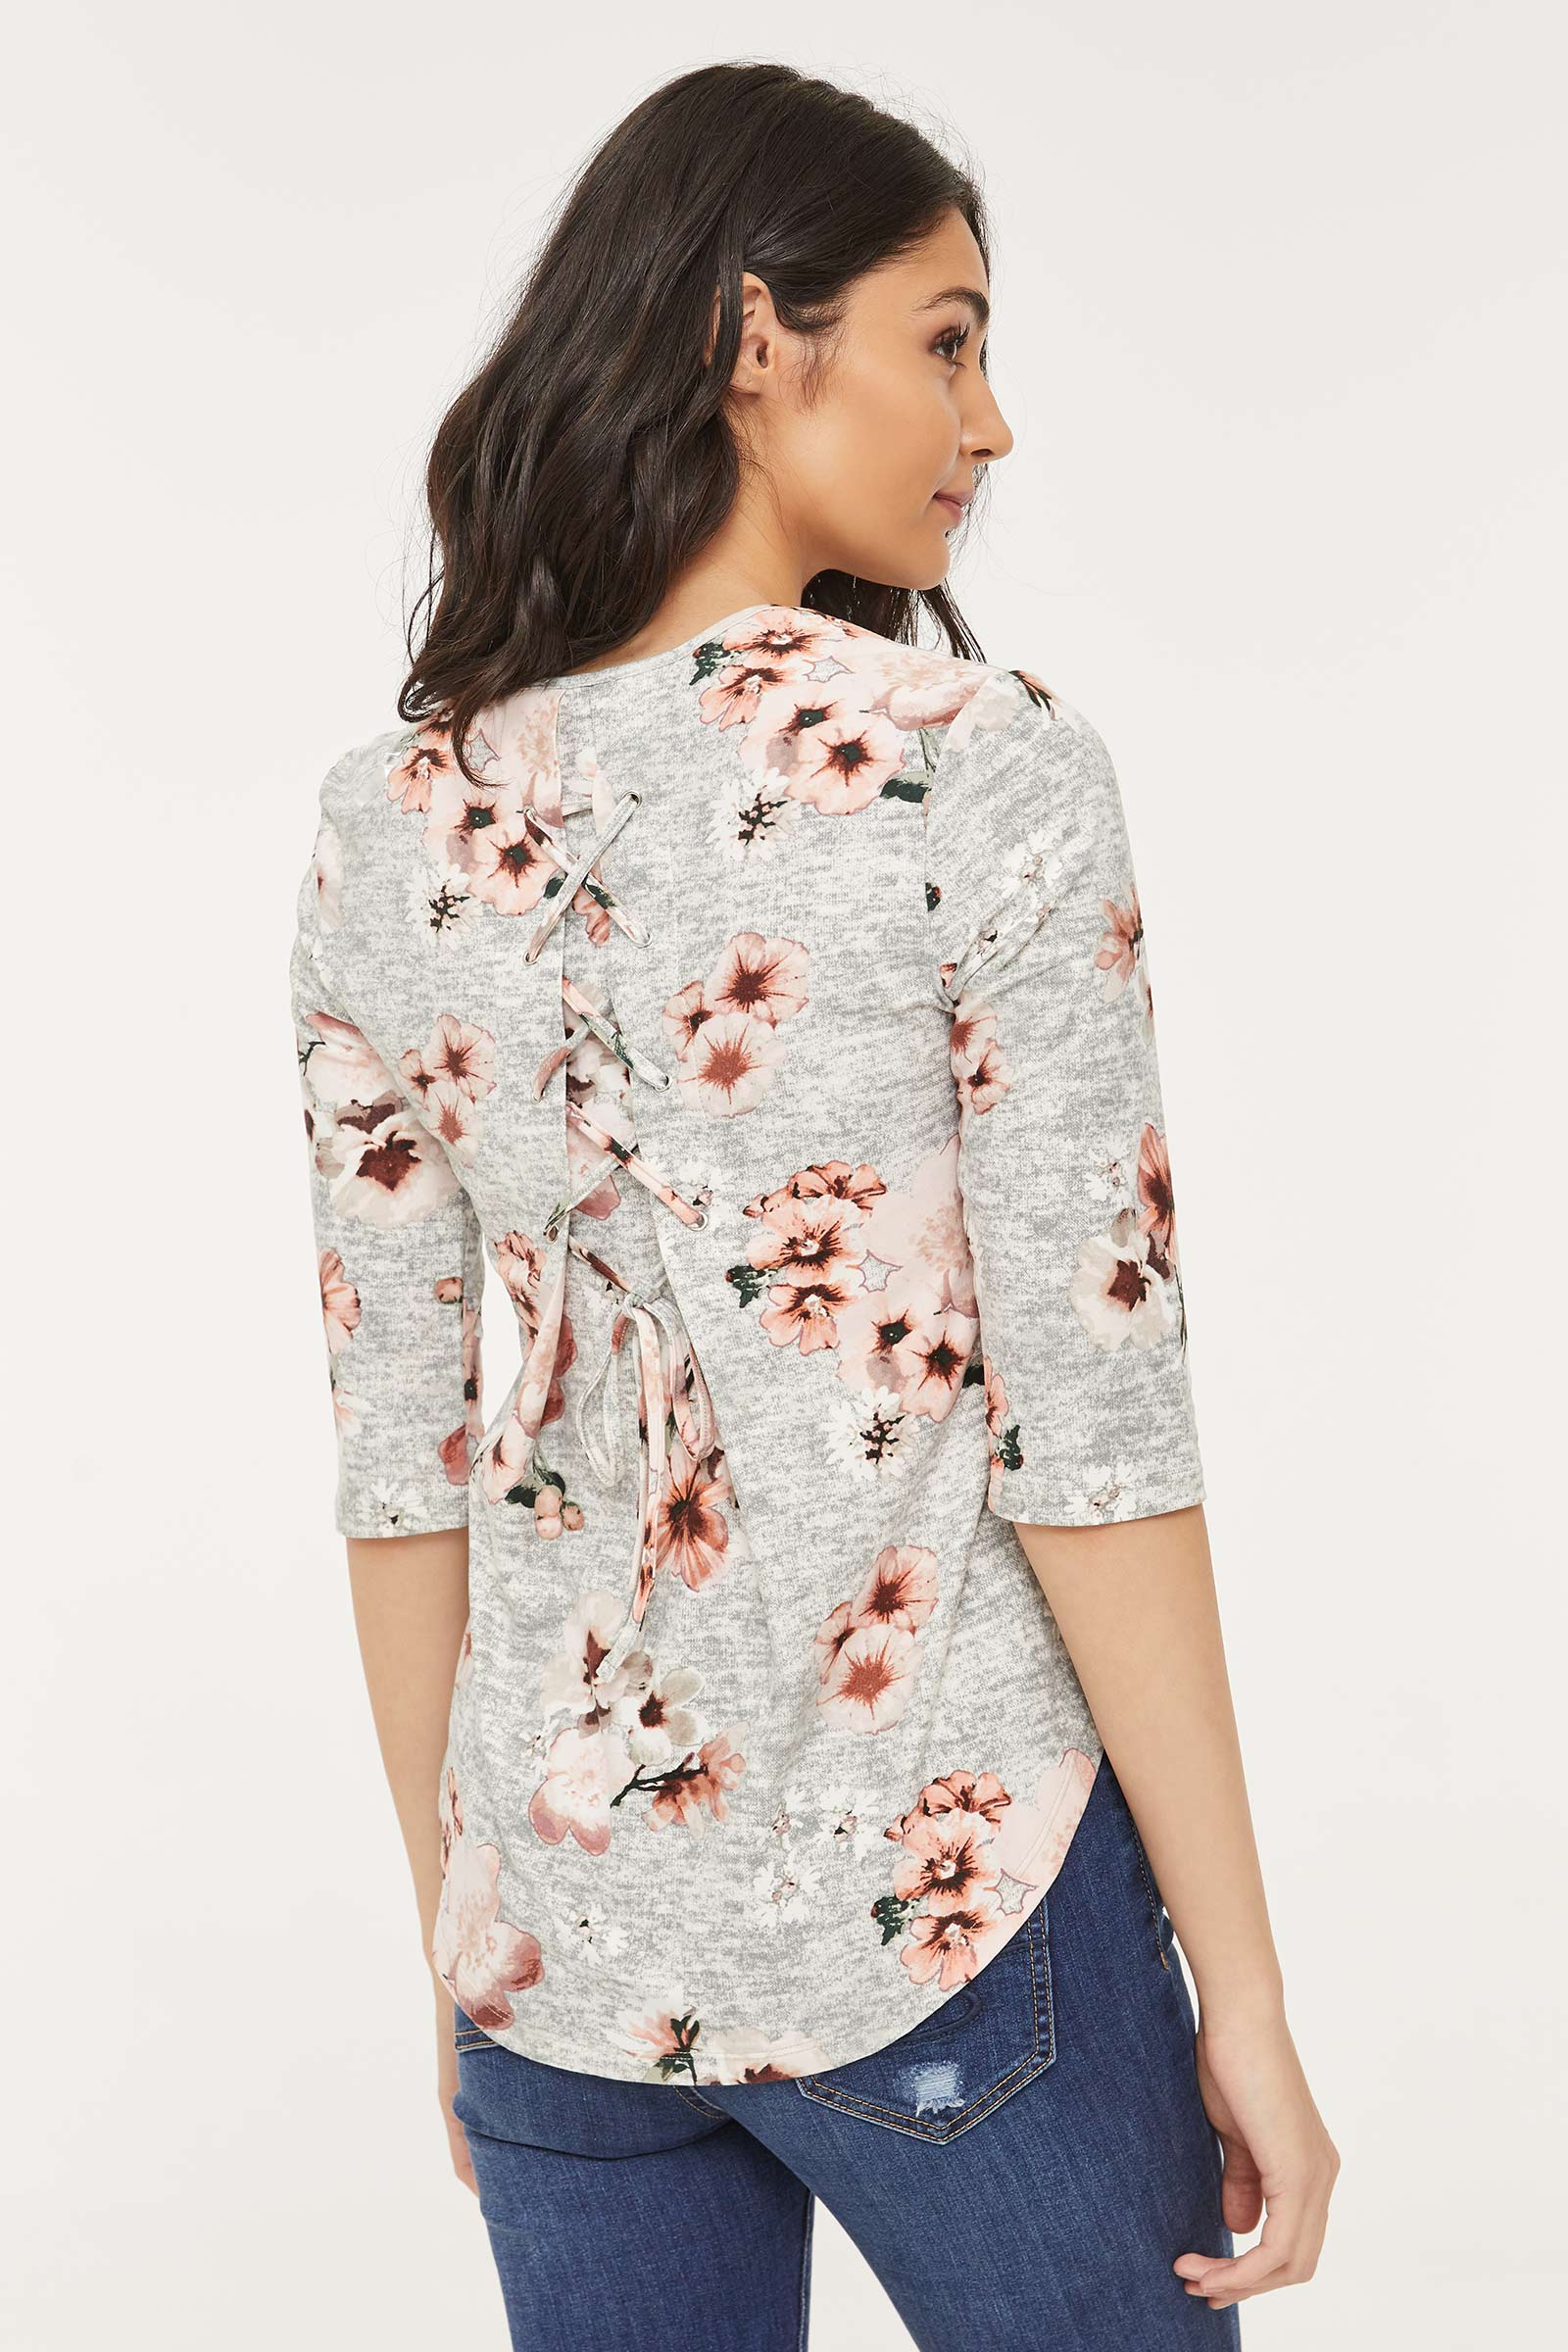 Floral Top with Lace-up Back